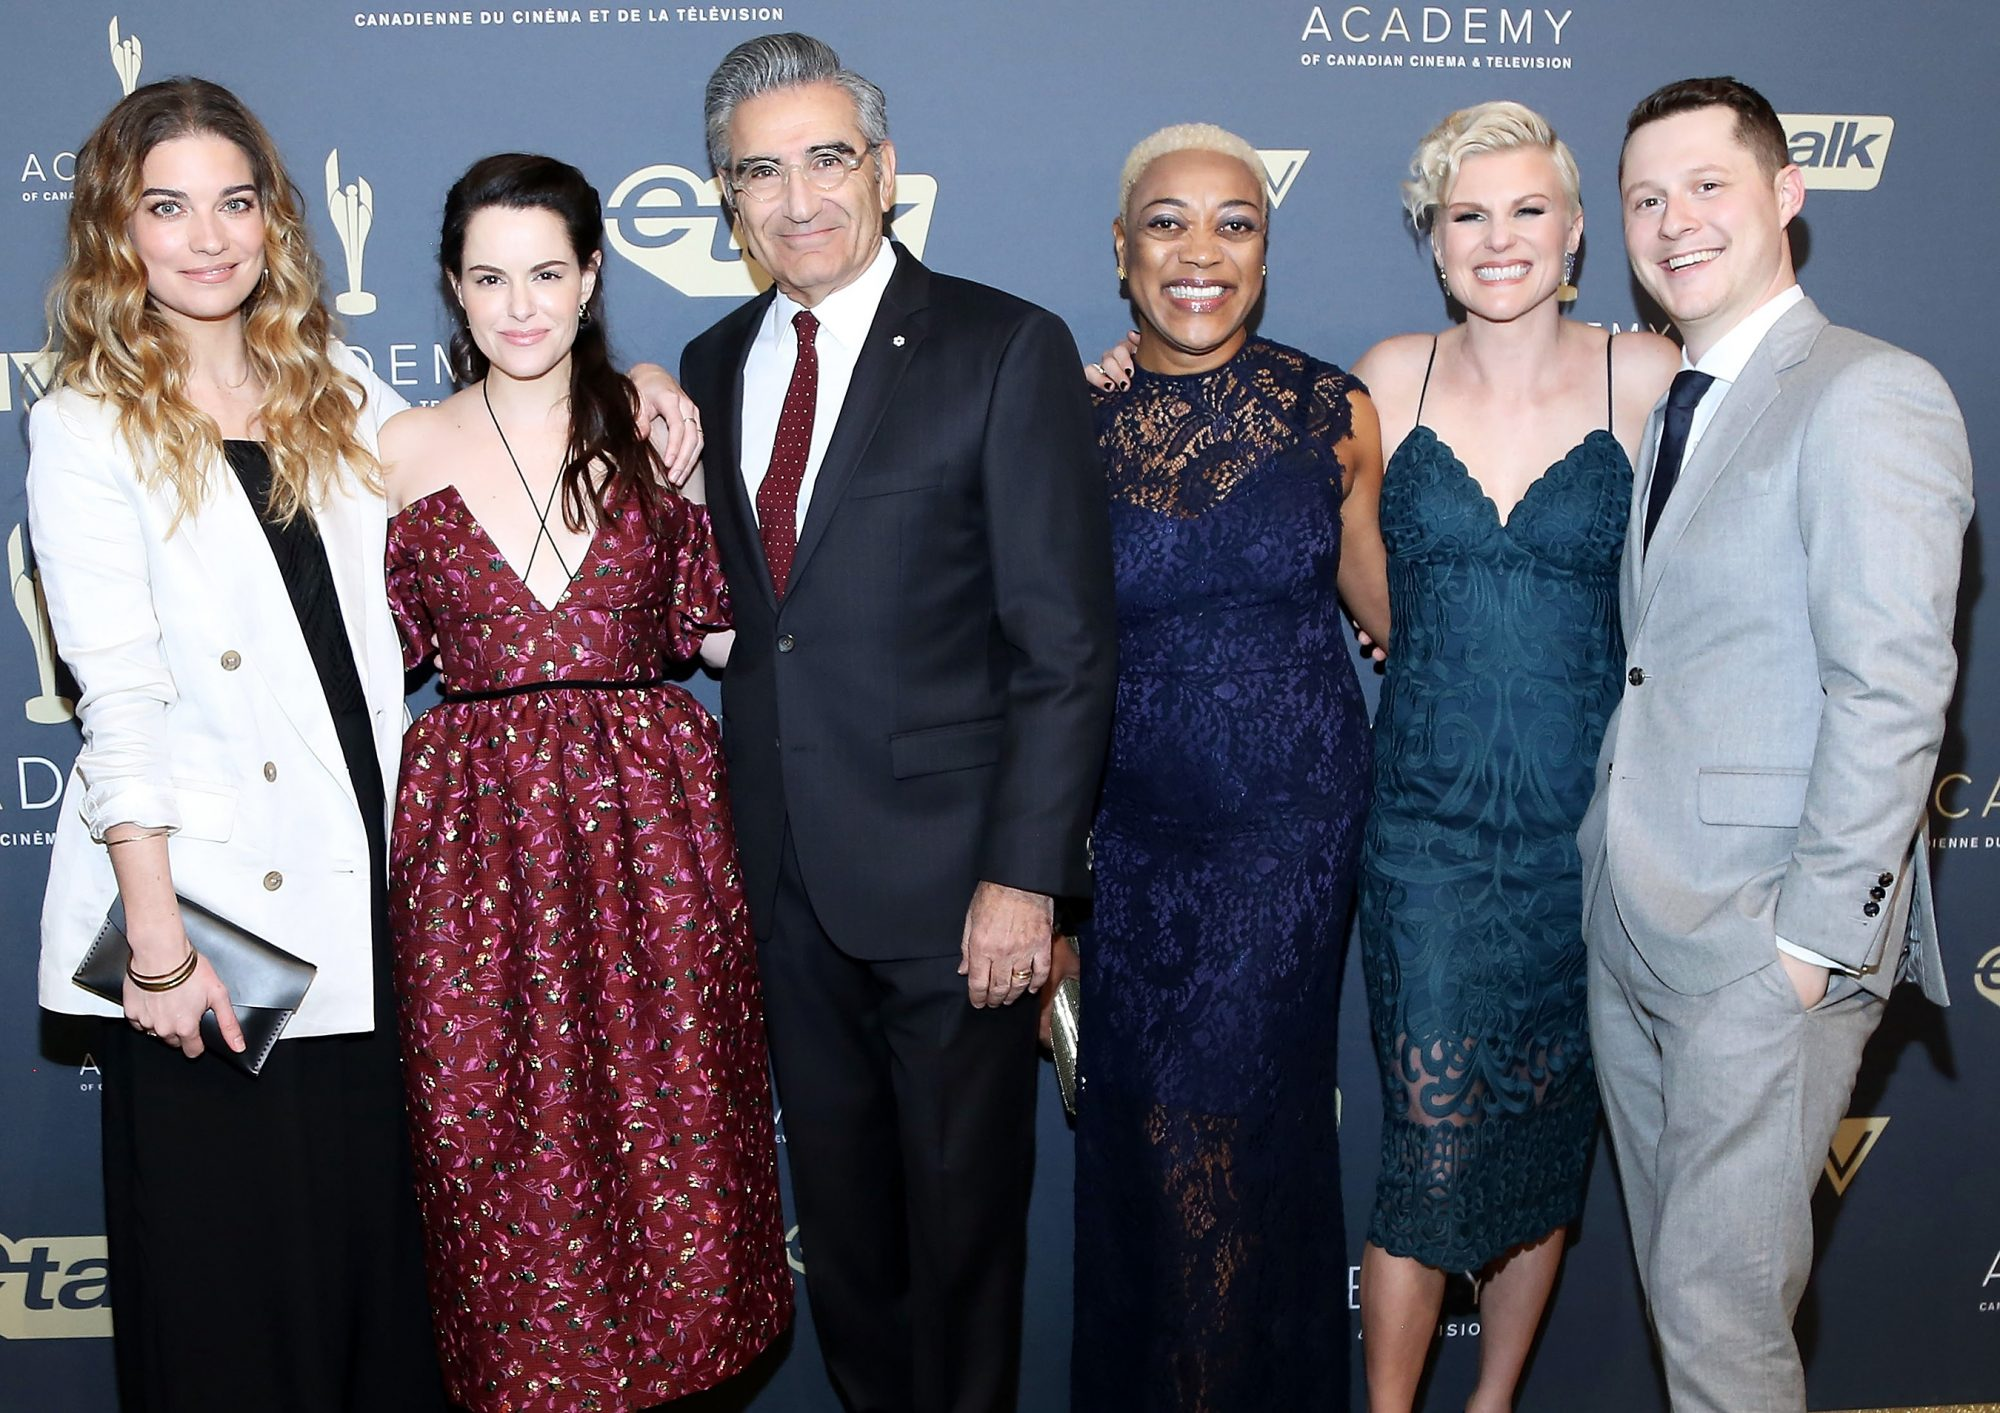 Canadian Screen Awards: The CTV Gala Honouring Excellence in Creative Fiction Storytelling